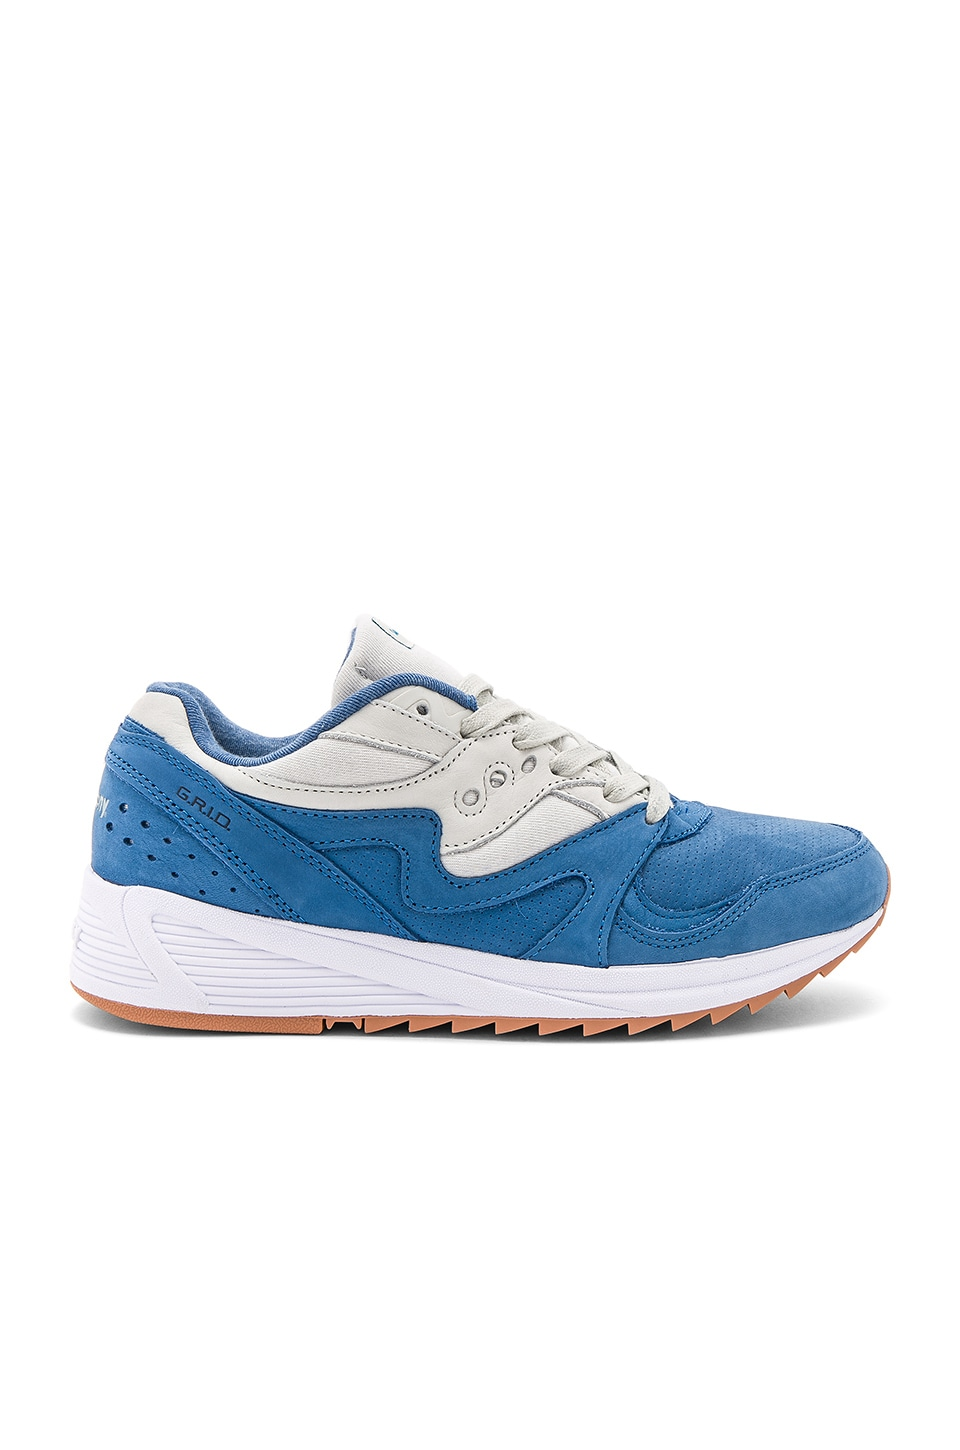 Grid 8000 by Saucony